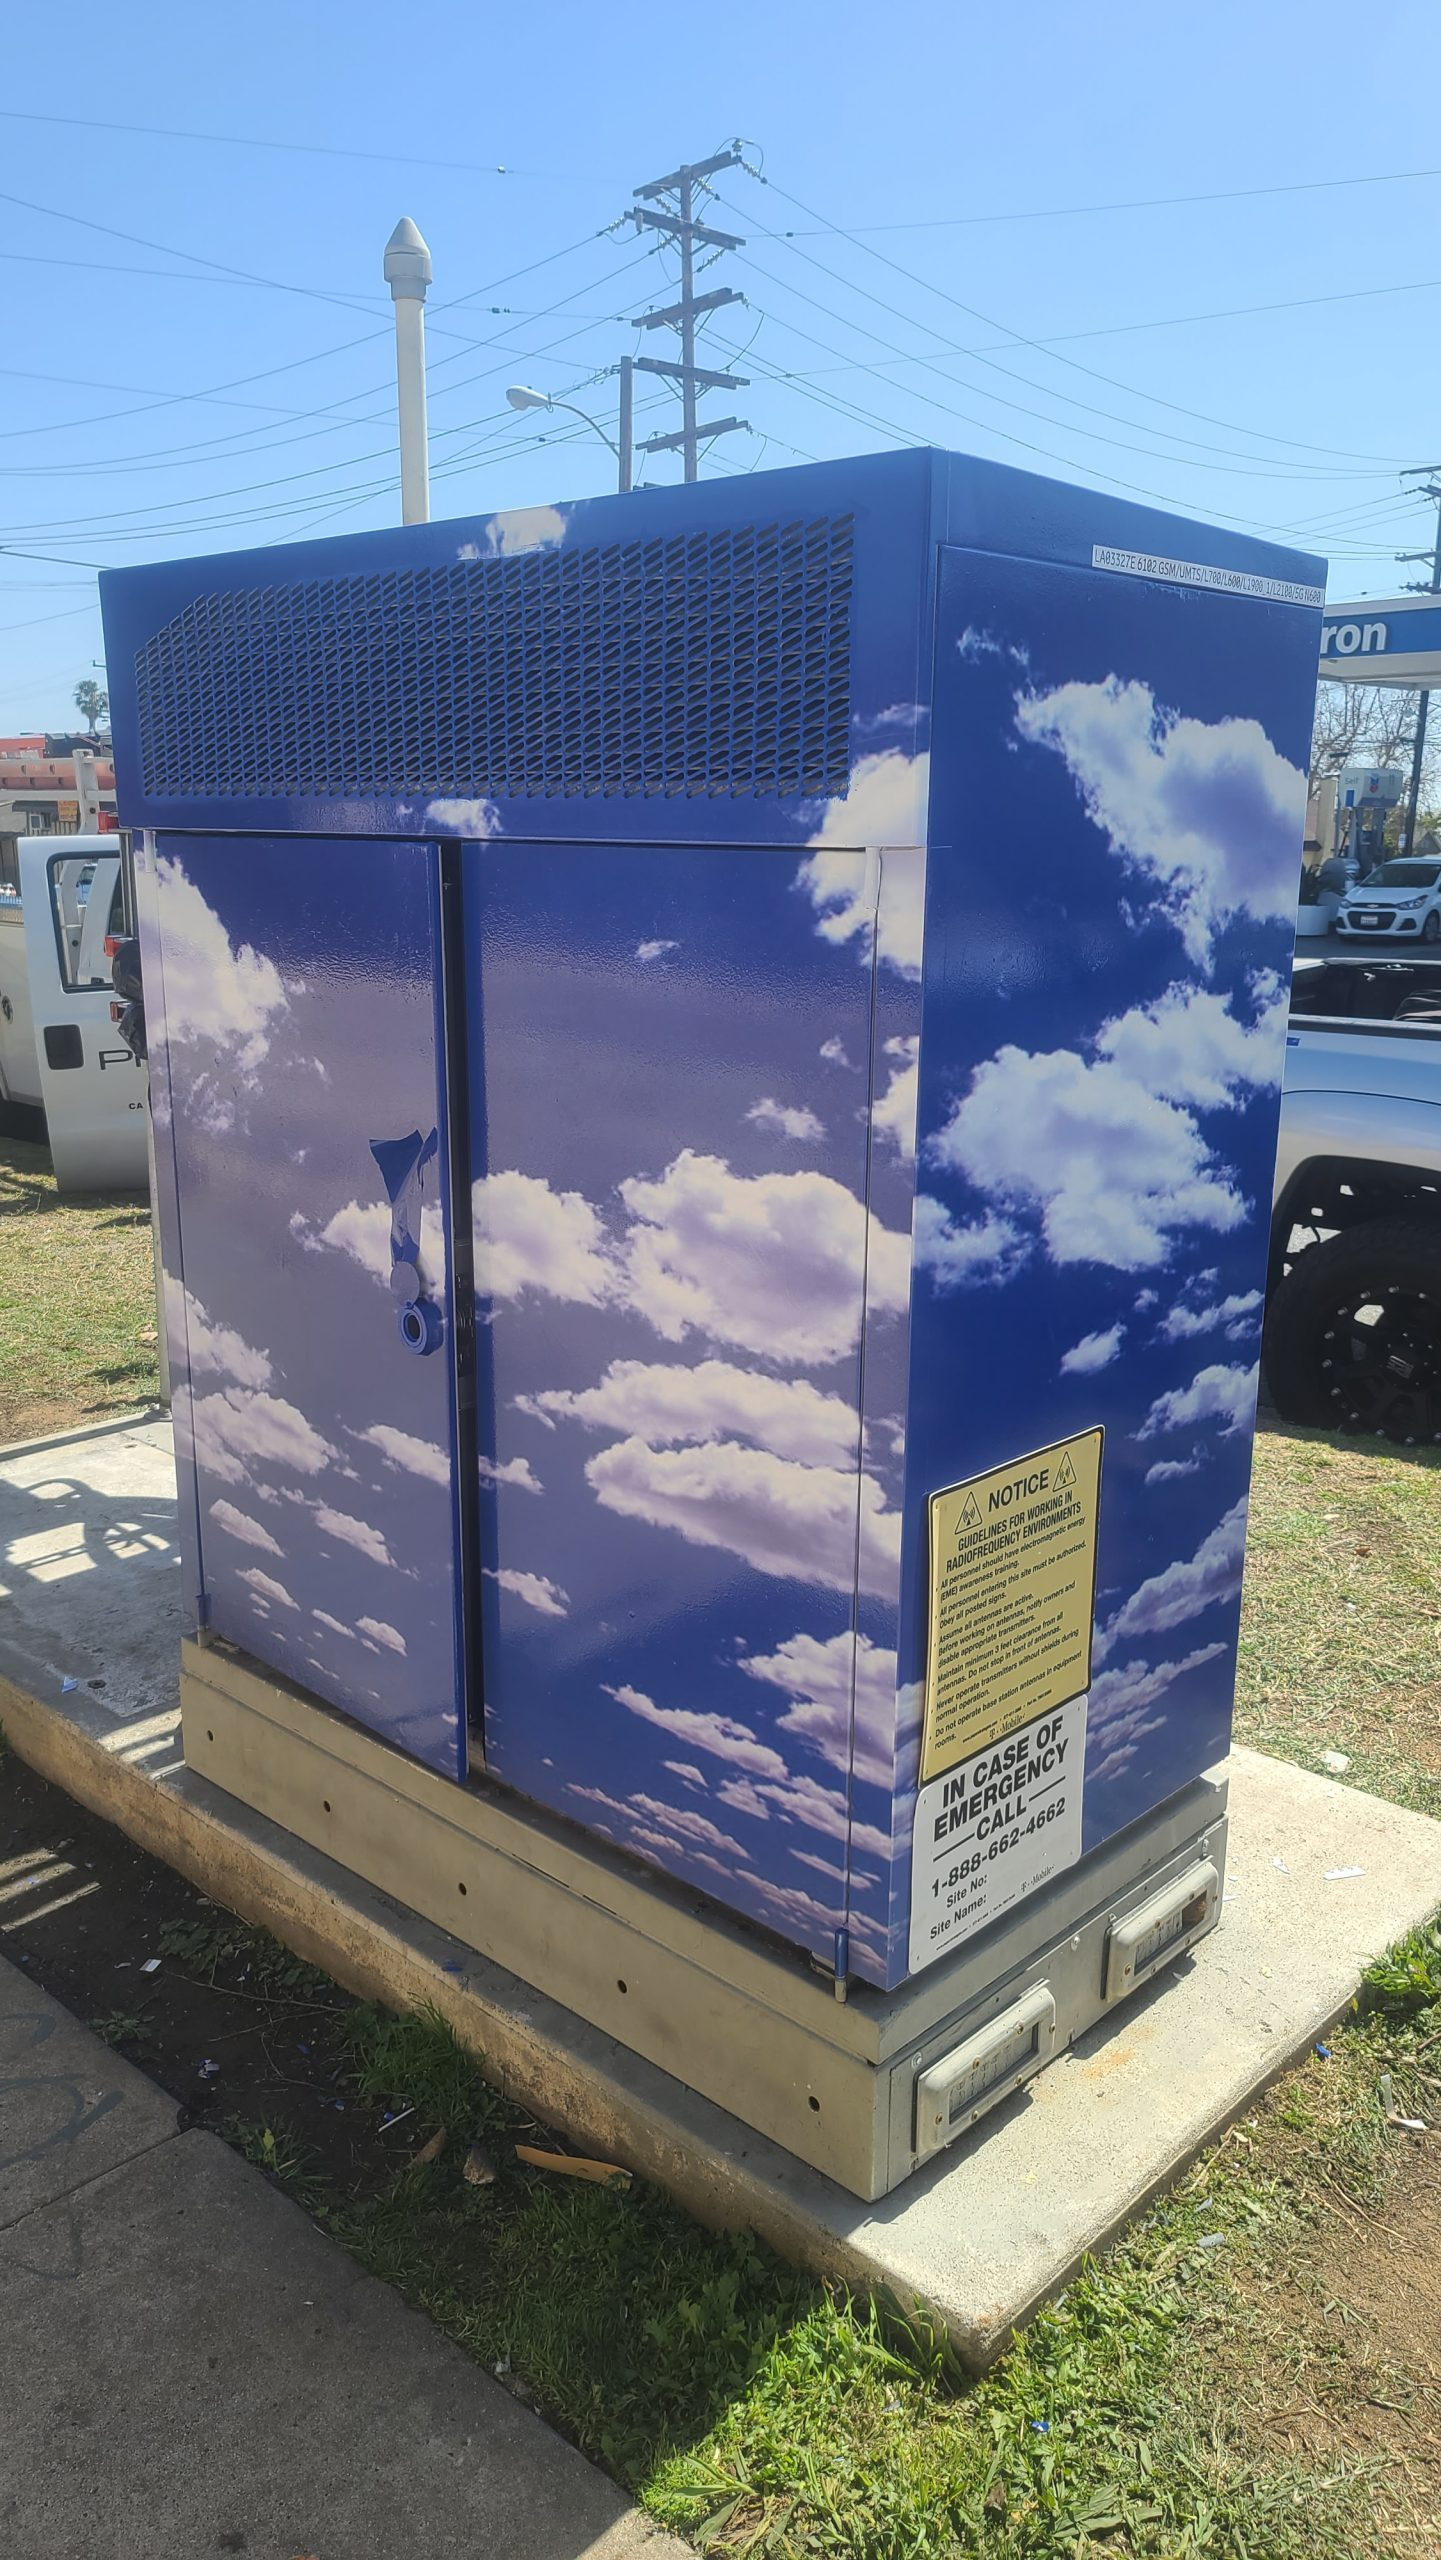 This is the full utility box vinyl wrap we made and installed for Process Cellular in Santa Ana.